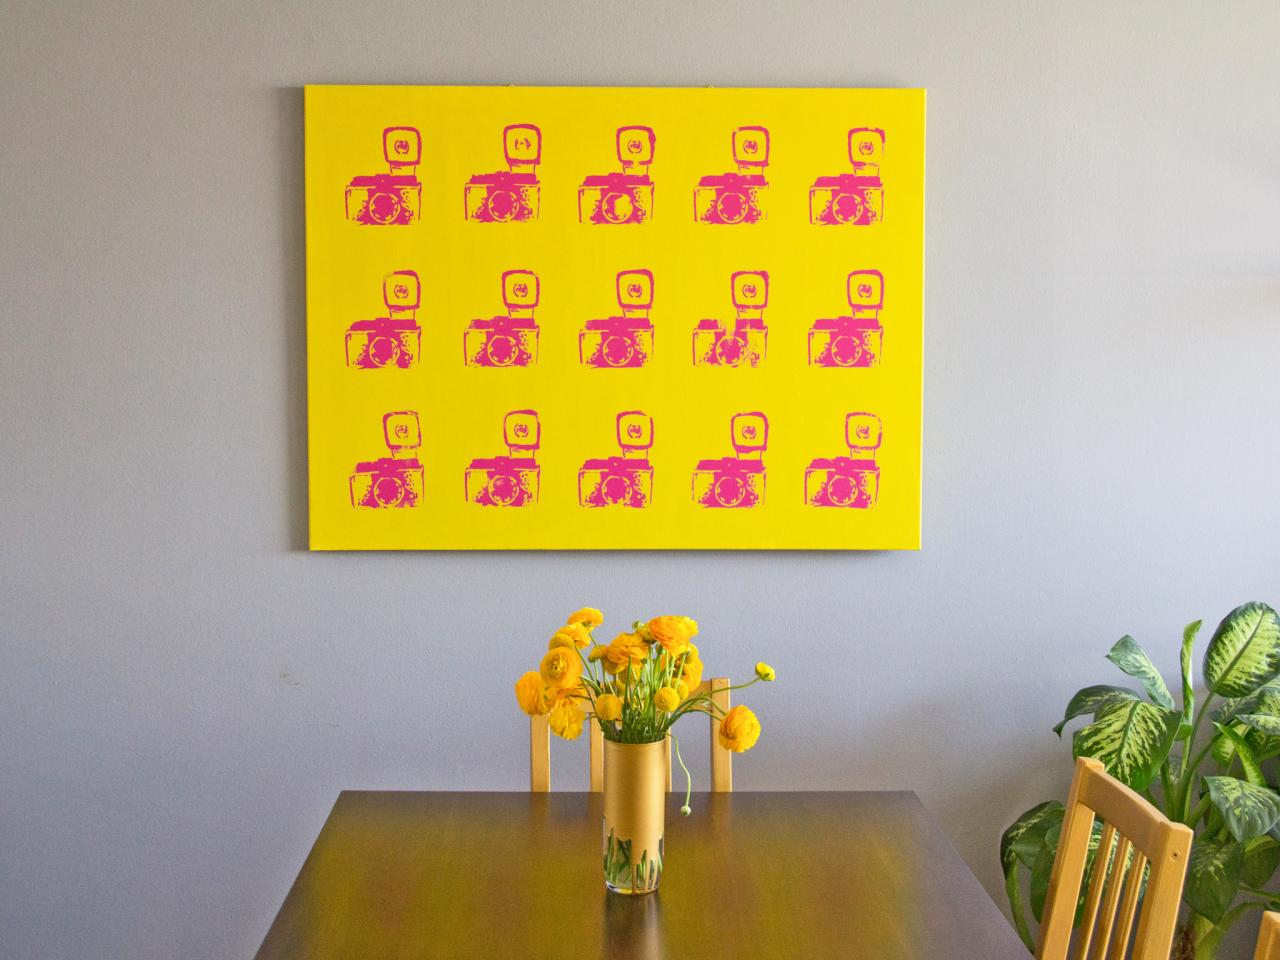 DIY Wall Decor: Make Faux-Screenprinted Pop Art | HGTV